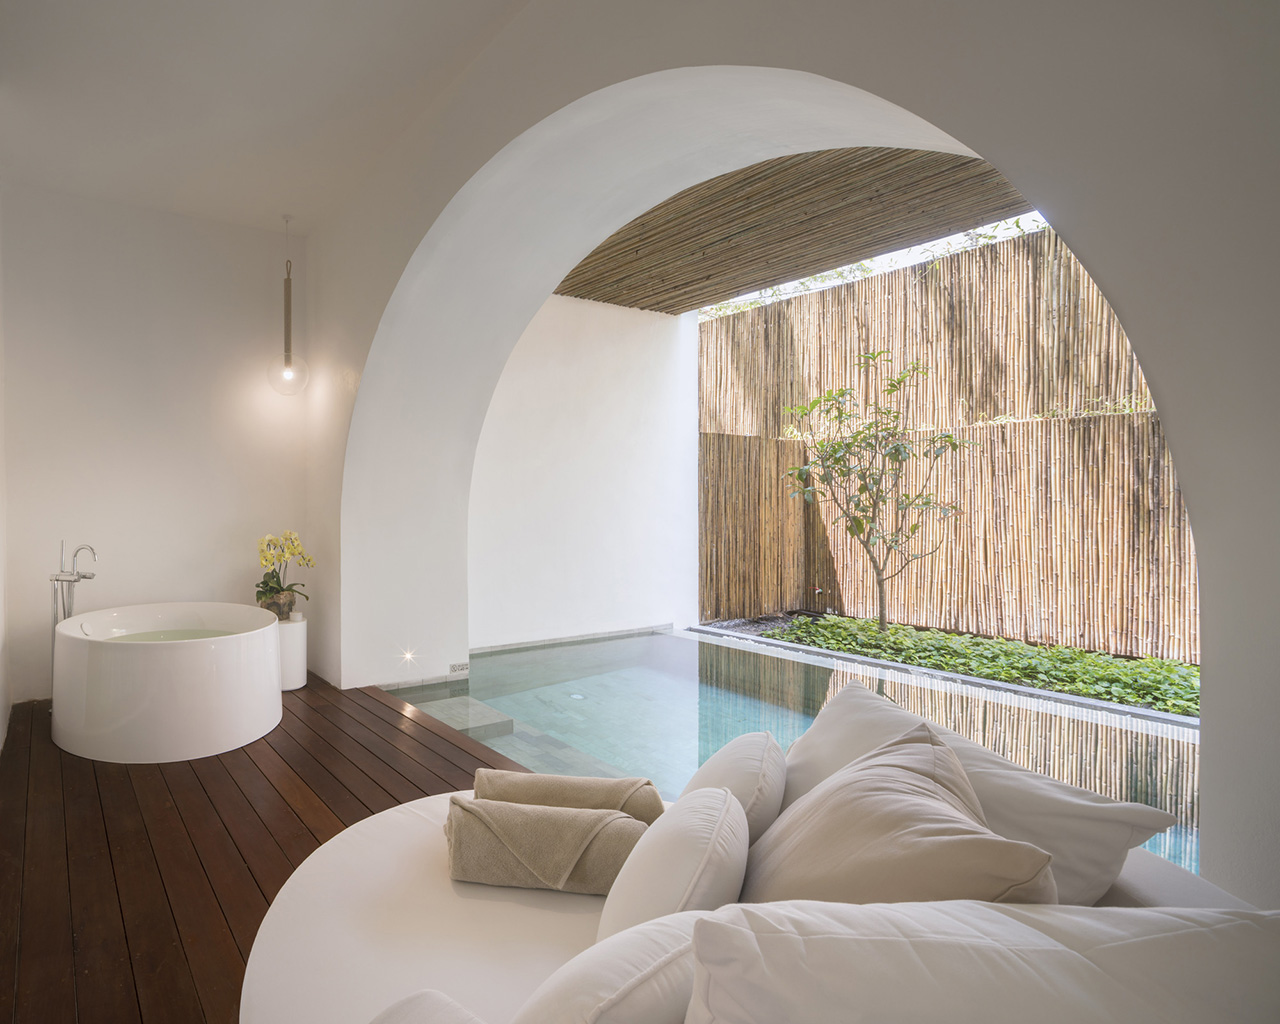 The garden pool suite provides more privacy with an enclosed private pool.